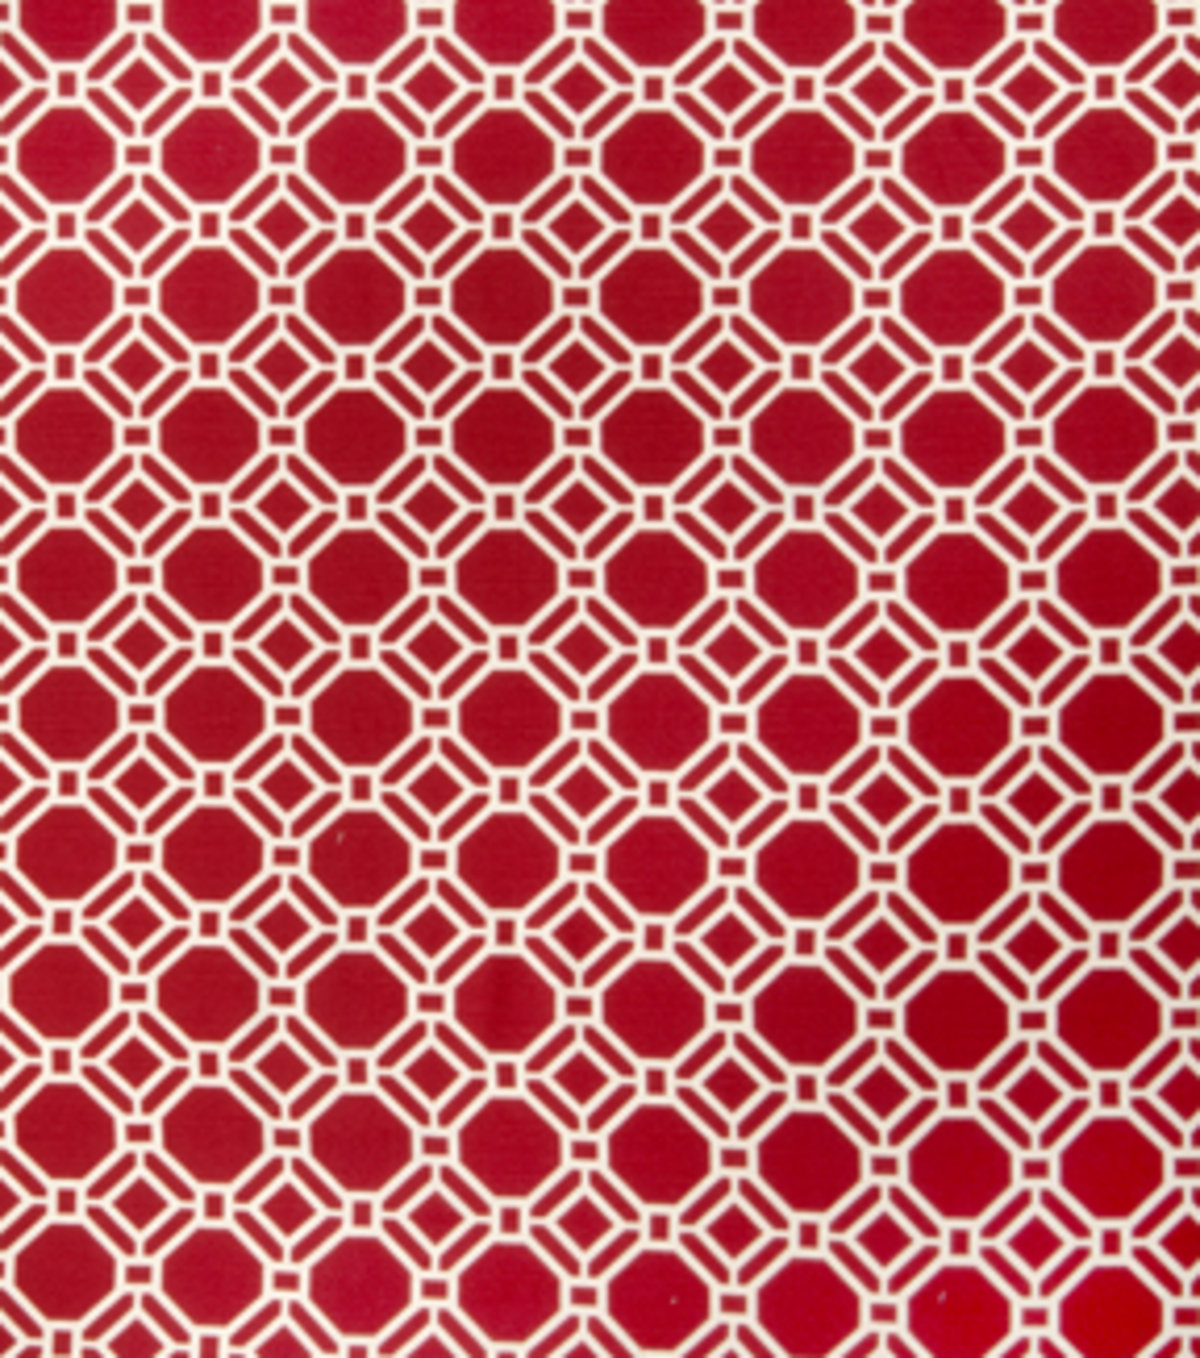 "Home Decor 8""x8"" Fabric Swatch-SMC Designs Archway / Cardinal-Jcp"